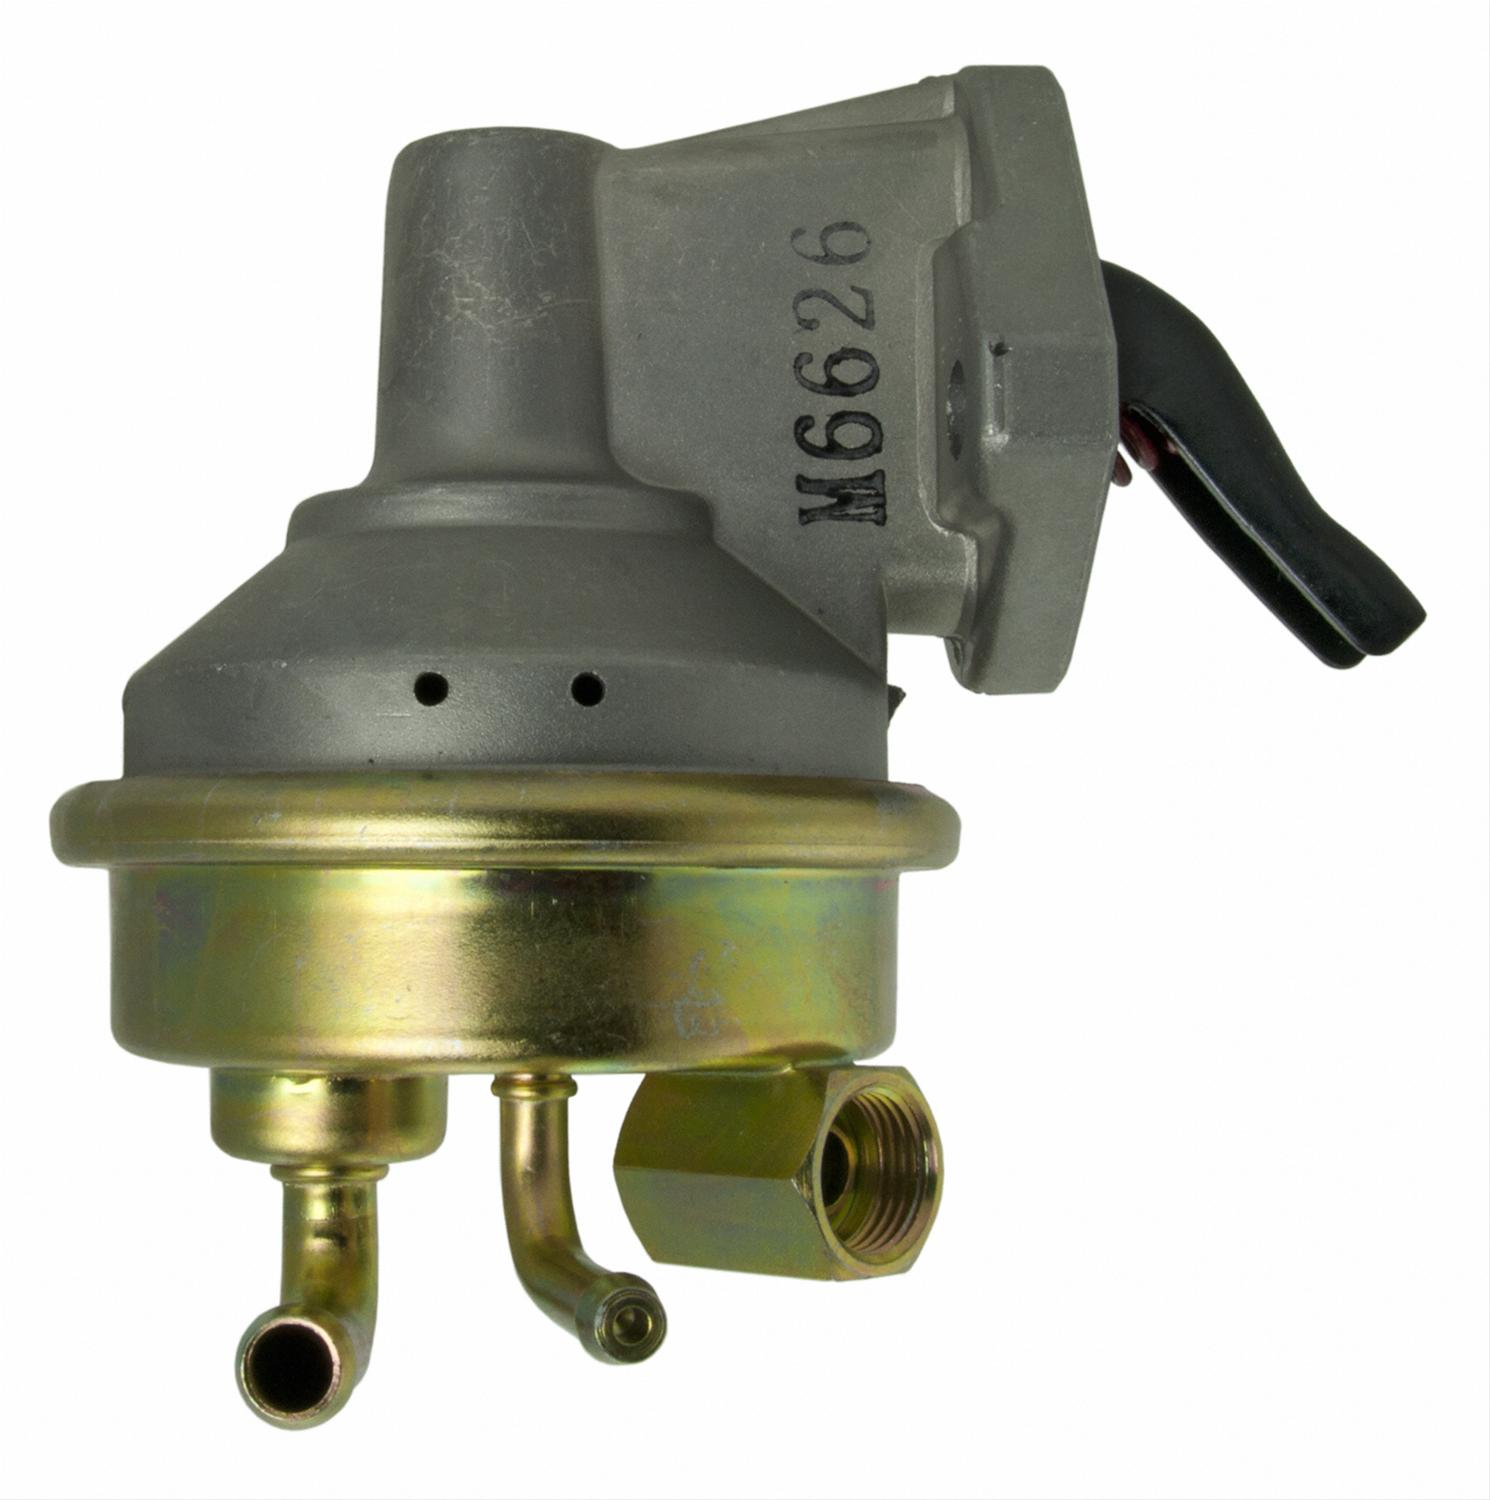 Remarkable Carter Muscle Car Mechanical Fuel Pumps M6626 Free Shipping On Wiring Cloud Pimpapsuggs Outletorg